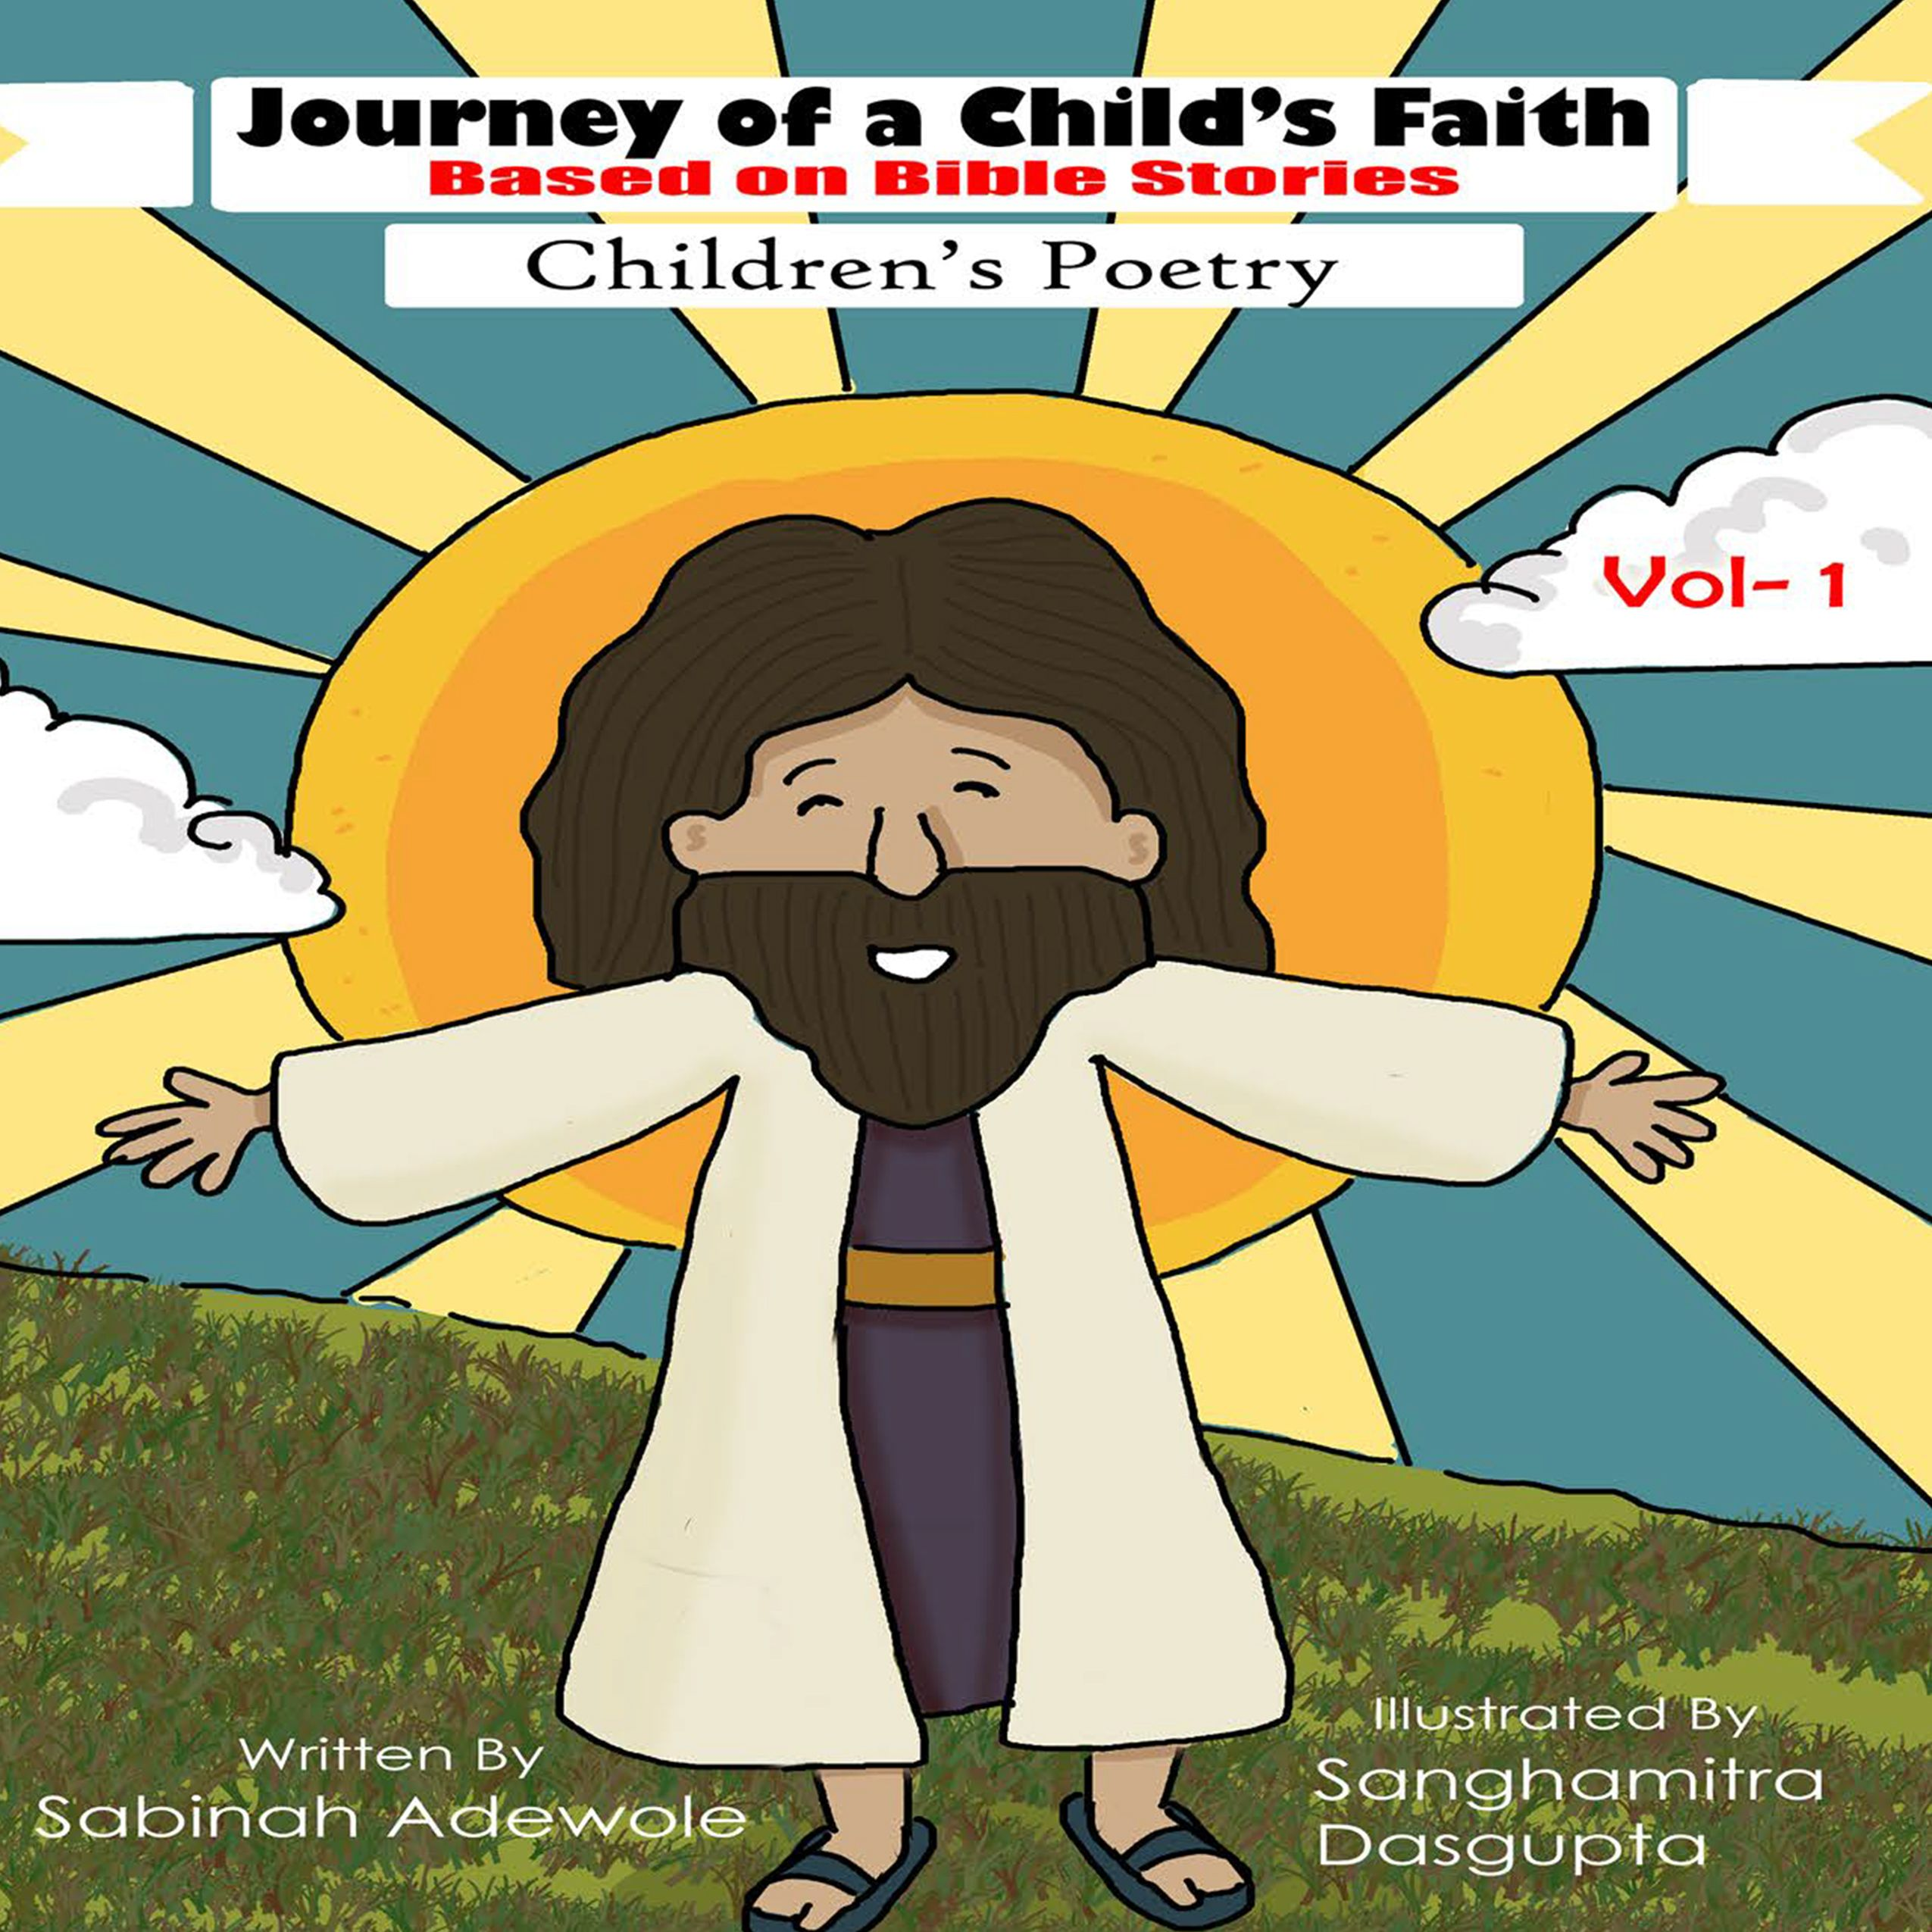 Journey of a Childs Faith's Ebook Image